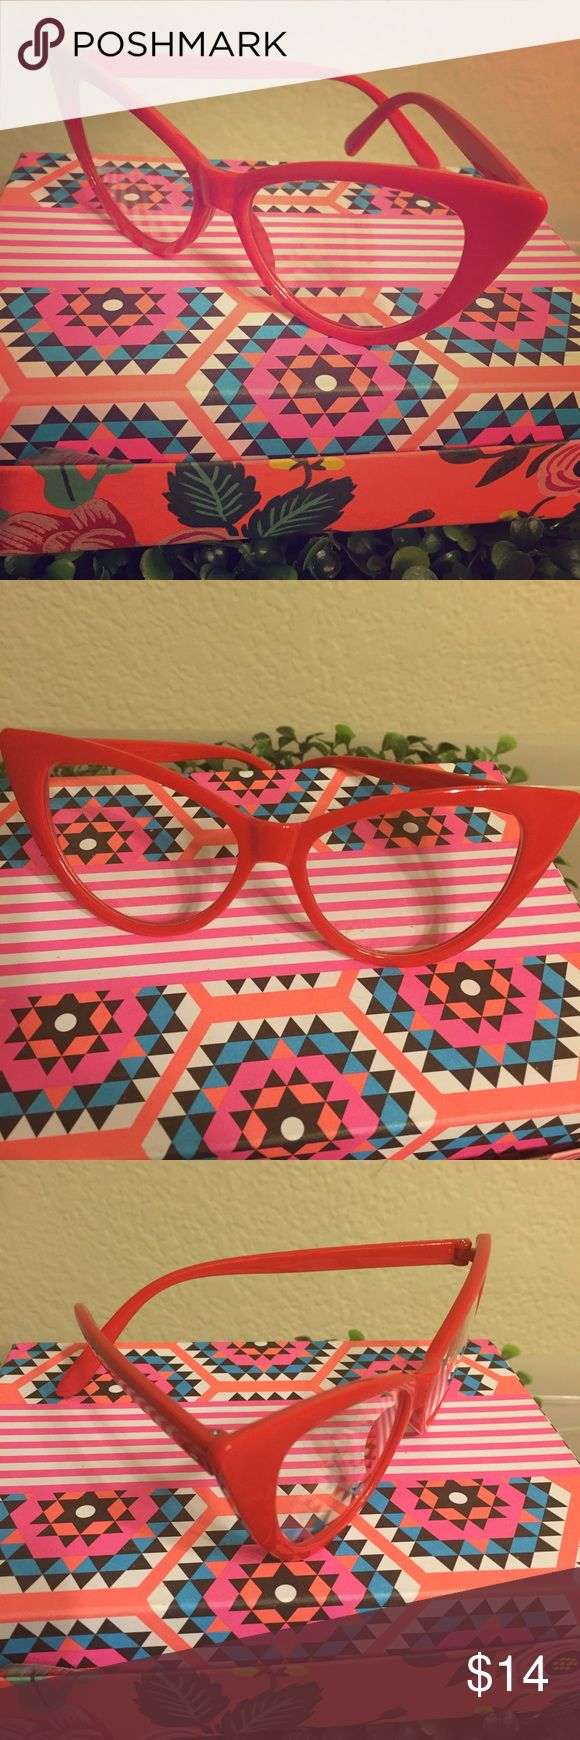 Clear lens red frame cateye glasses Clear lens with all red frame cat eye glasses! Perfect accessory to spice up your look! Retro vintage sexy style! New, unworn boutique item. Do not come with or include a case  ✨bundle with other listings to save✨ boutique Accessories Glasses